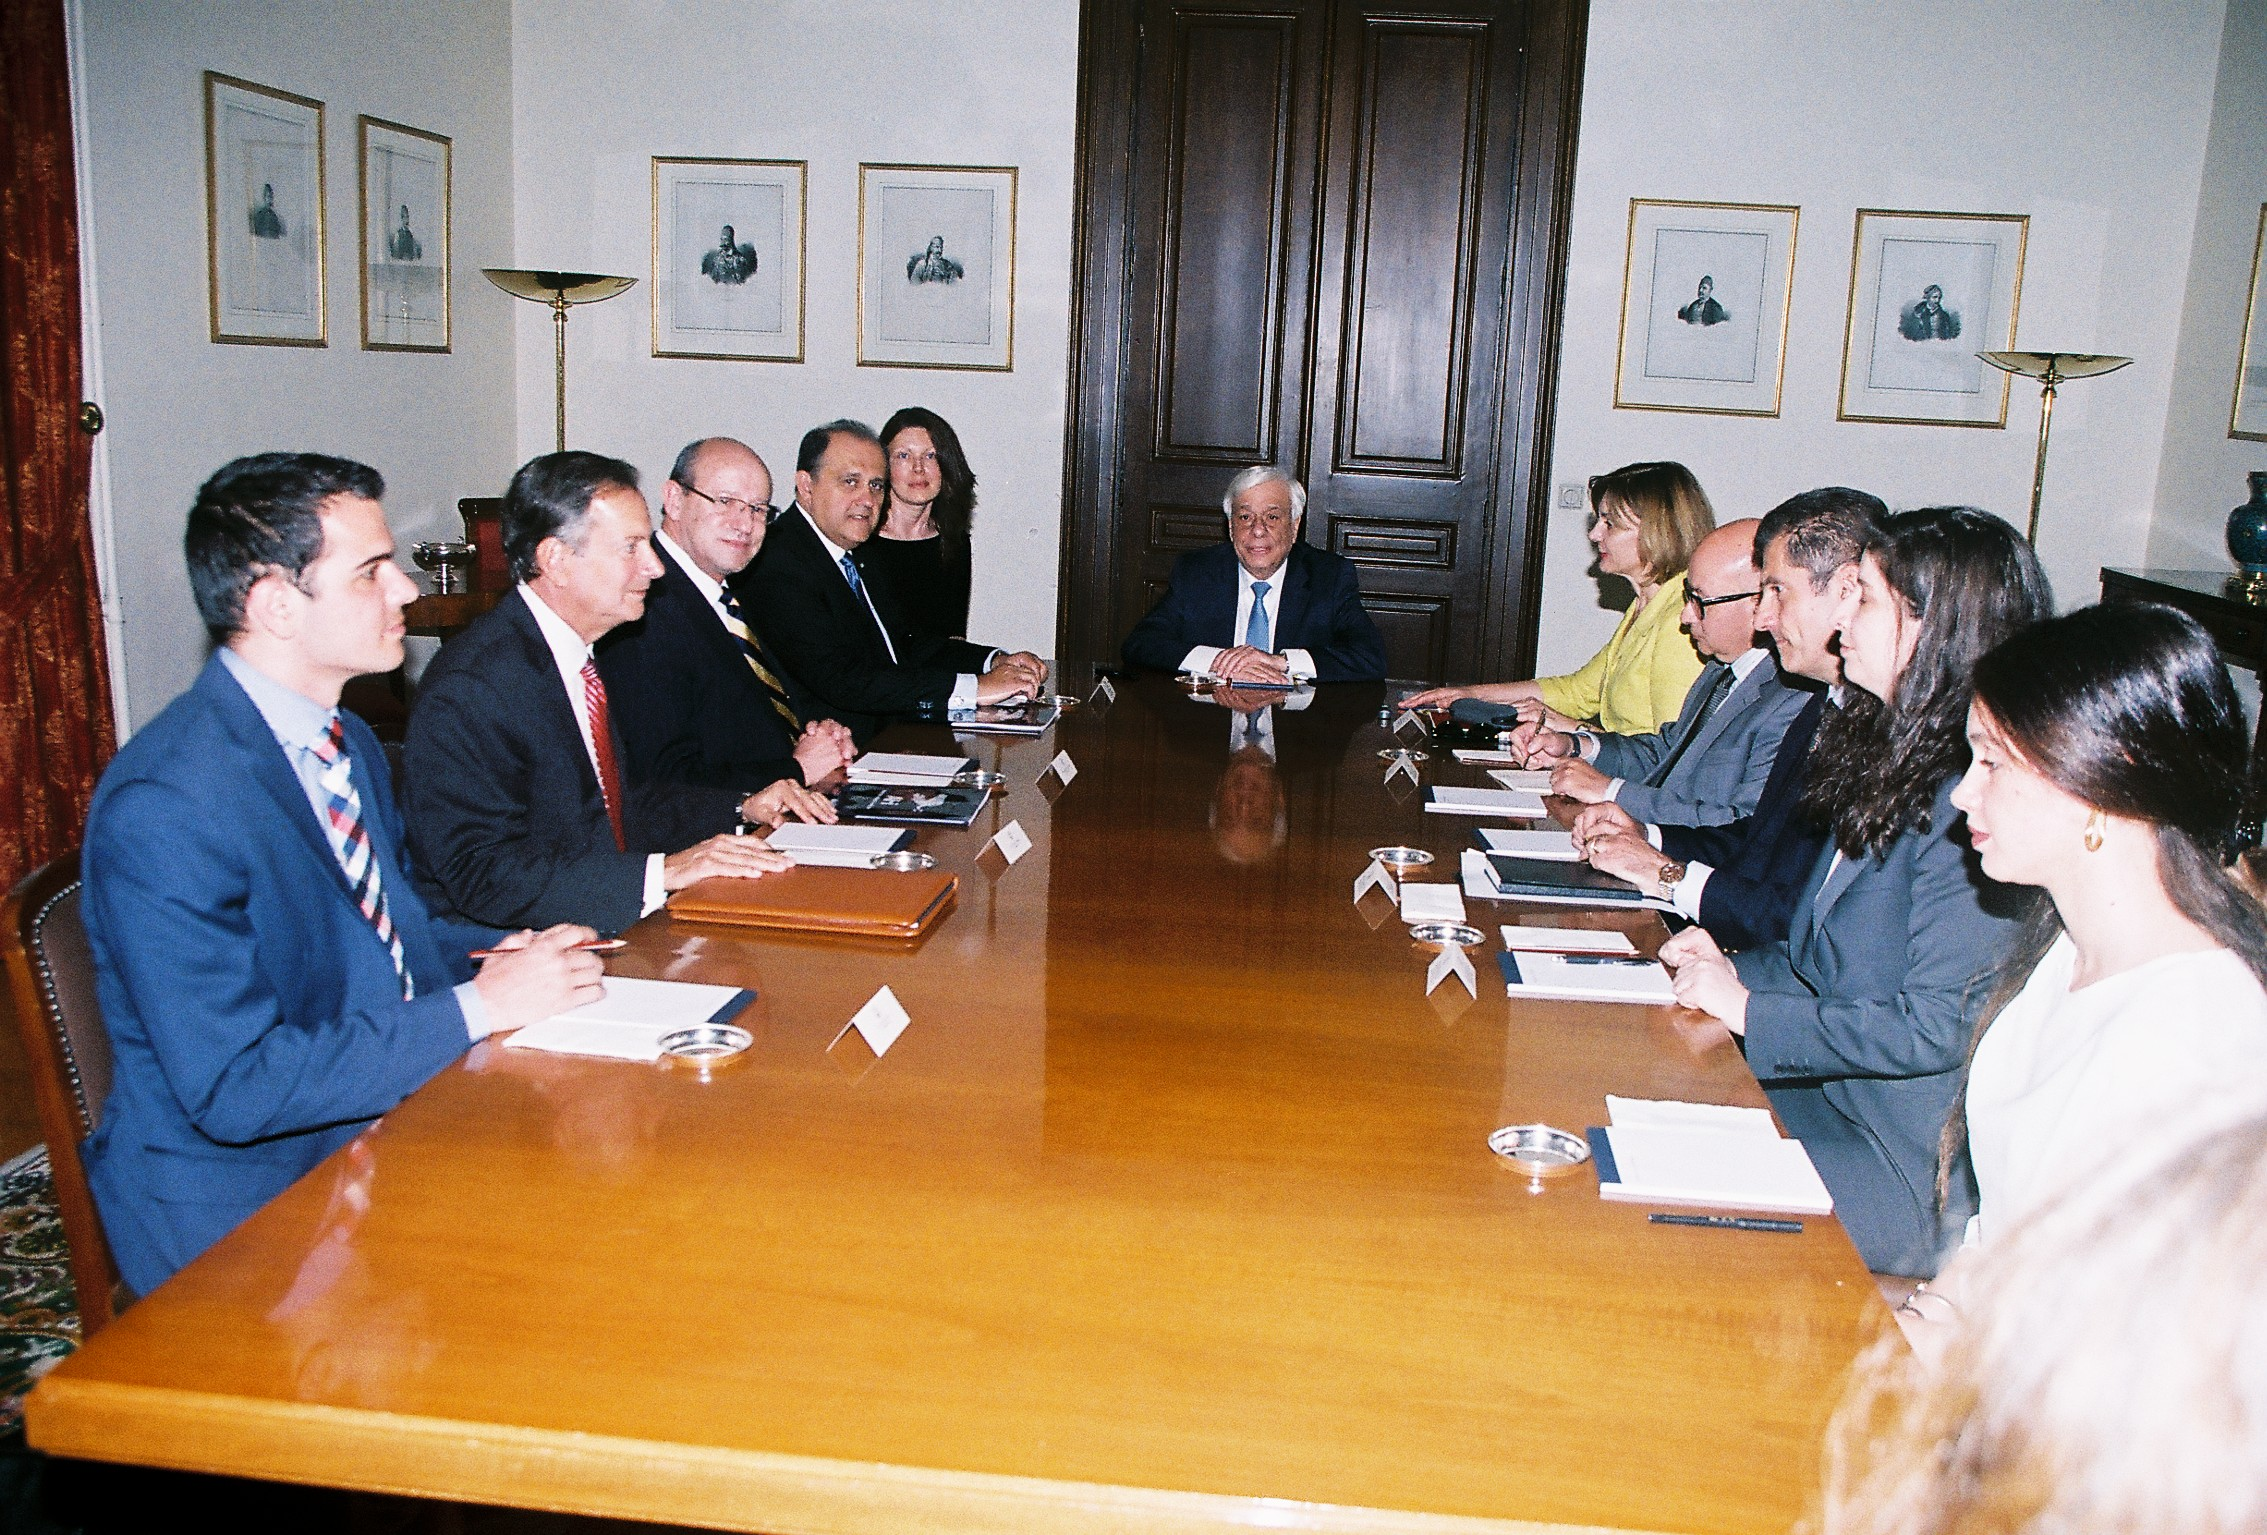 AHI Delegation briefing with President Pavlopoulos and staff